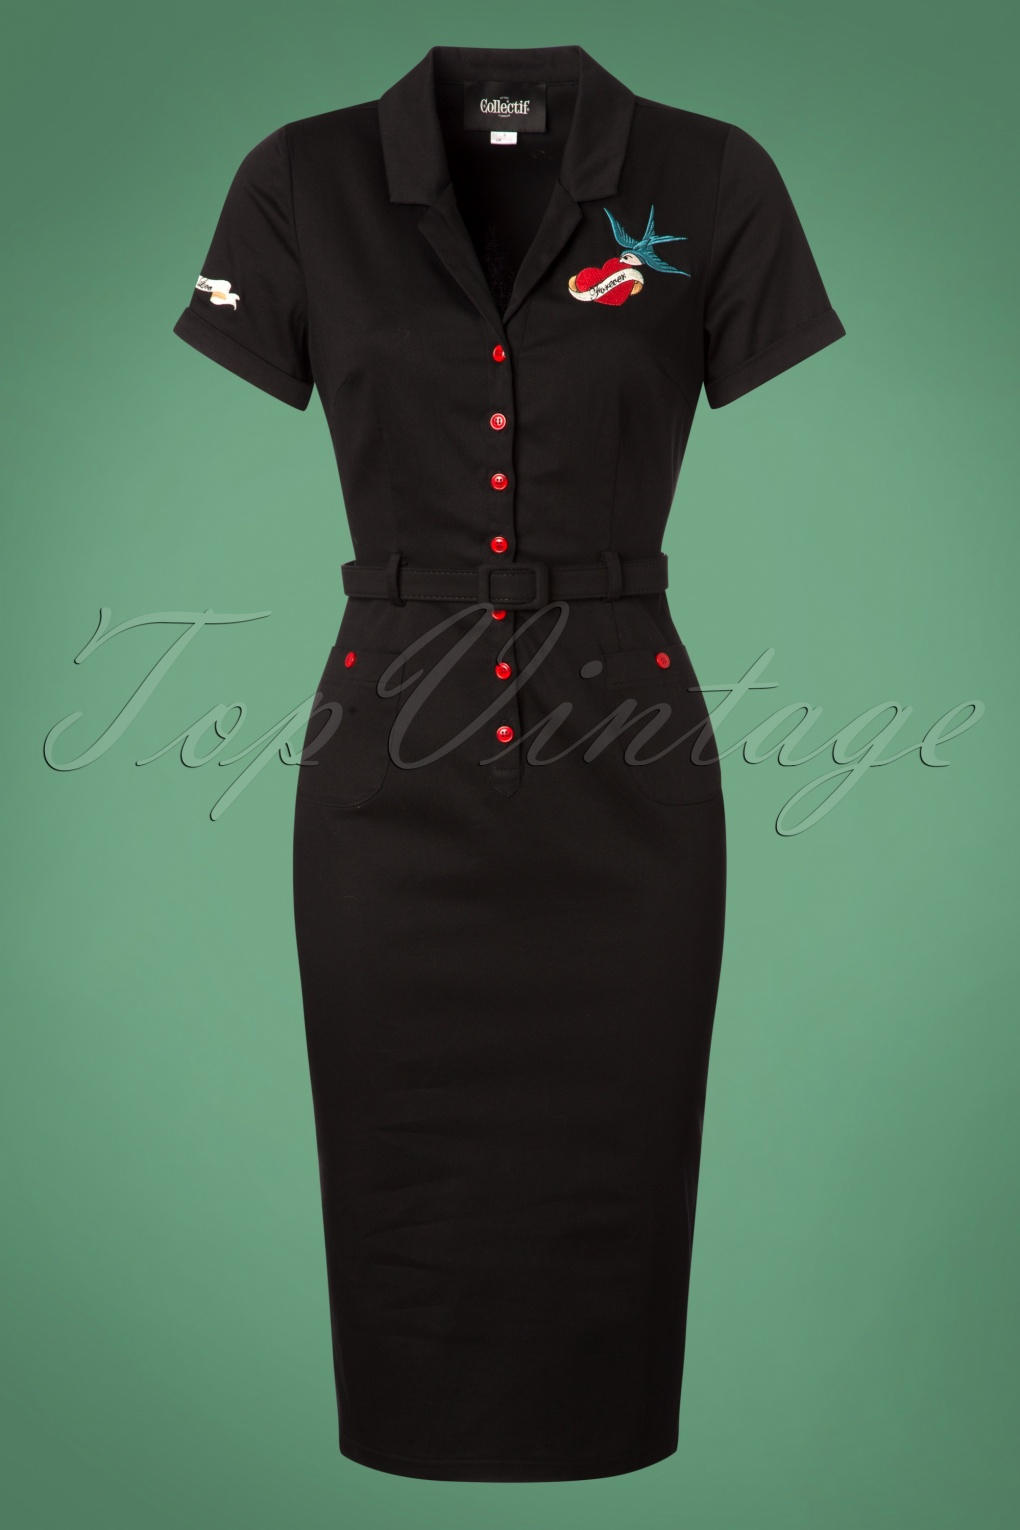 Wiggle Dresses | Pencil Dresses 40s, 50s, 60s 50s Caterina True Love Pencil Dress in Black £66.32 AT vintagedancer.com